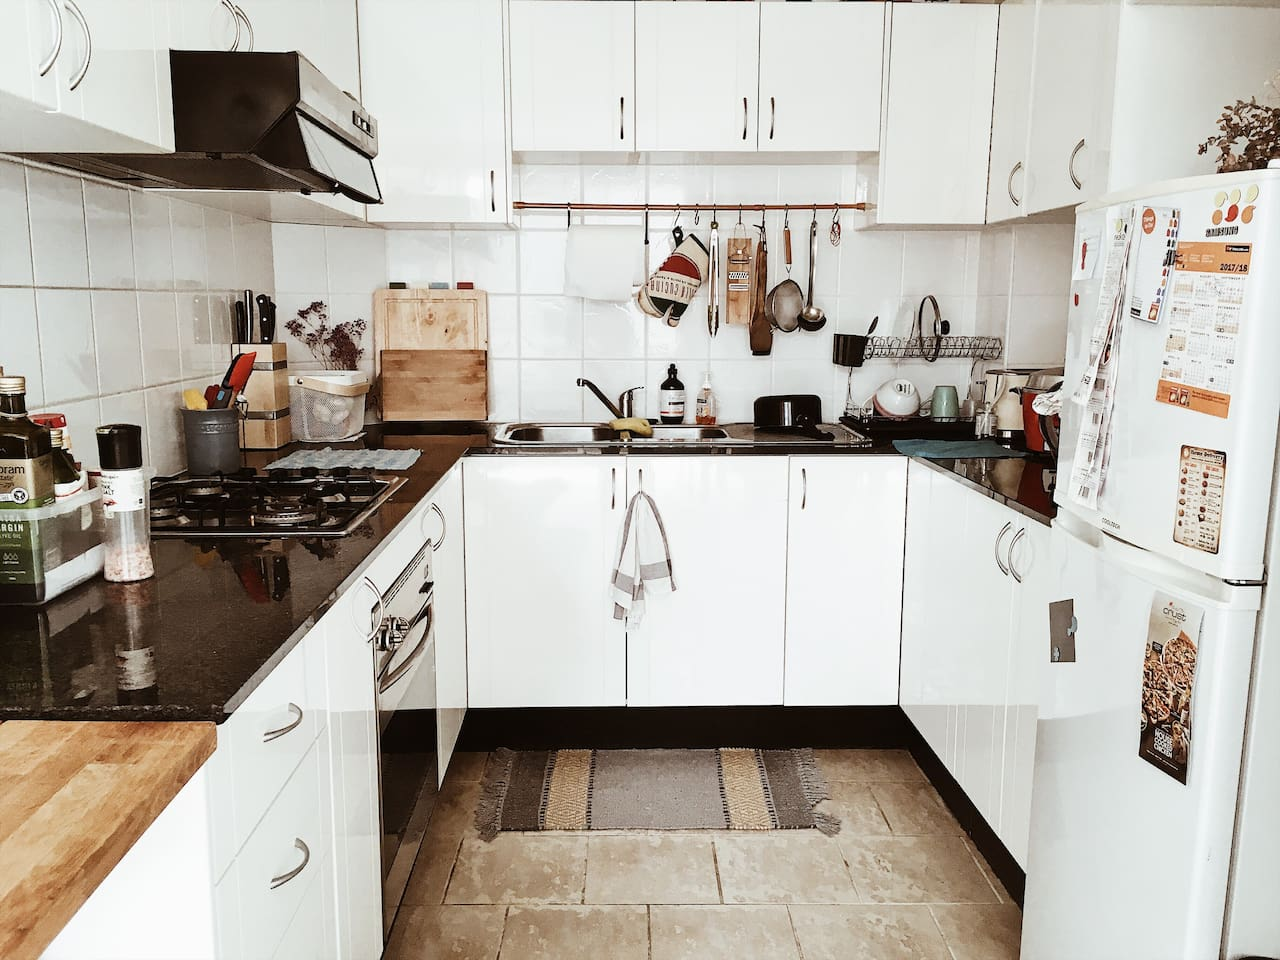 tiny but well-equipped kitchen, you can use everything here. you can prepare your own meal or if you like you can have dinner with us, we like food and share:)